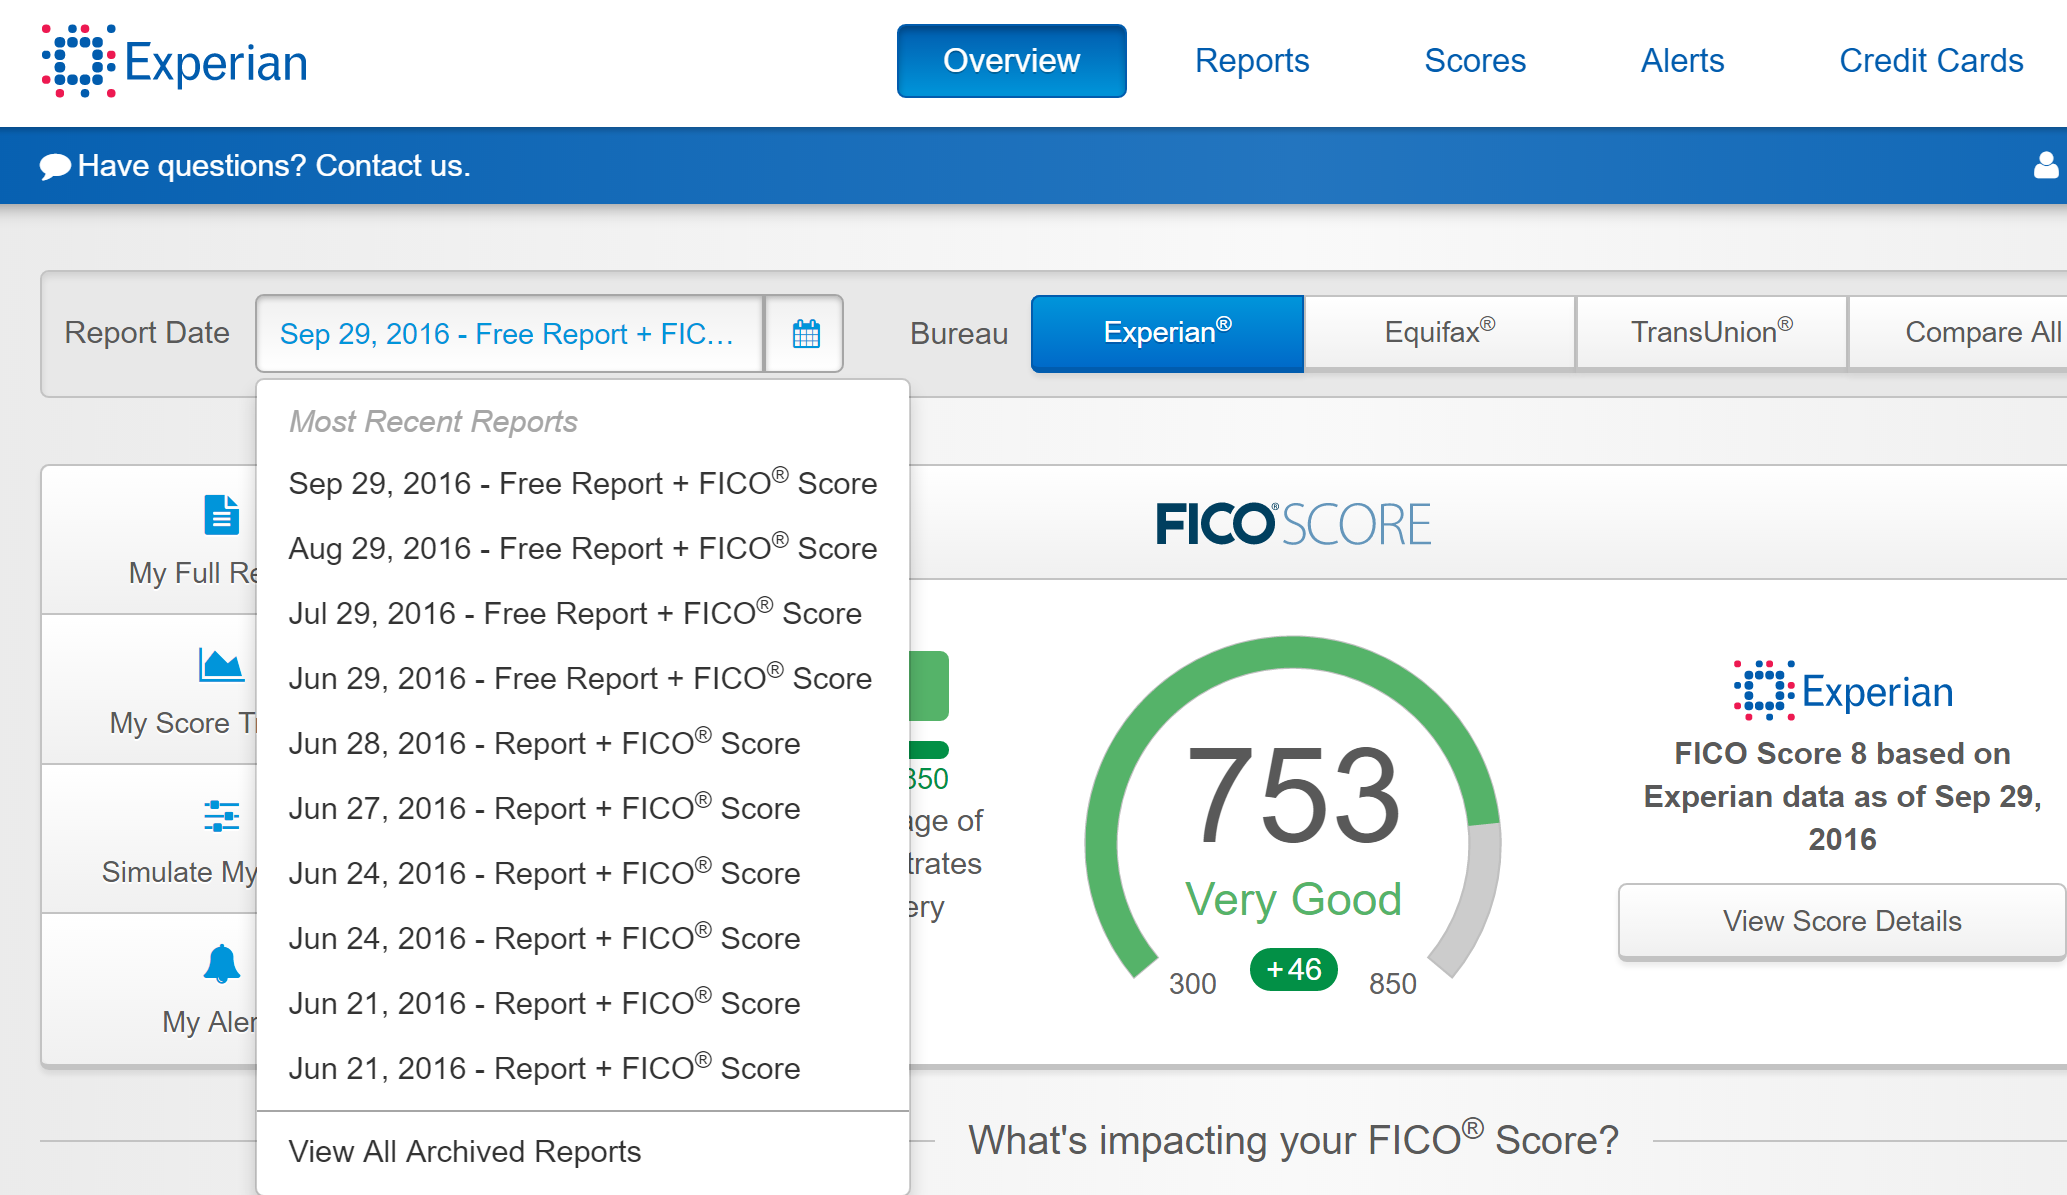 Experian.com free credit report is awesome! - myFICO ...